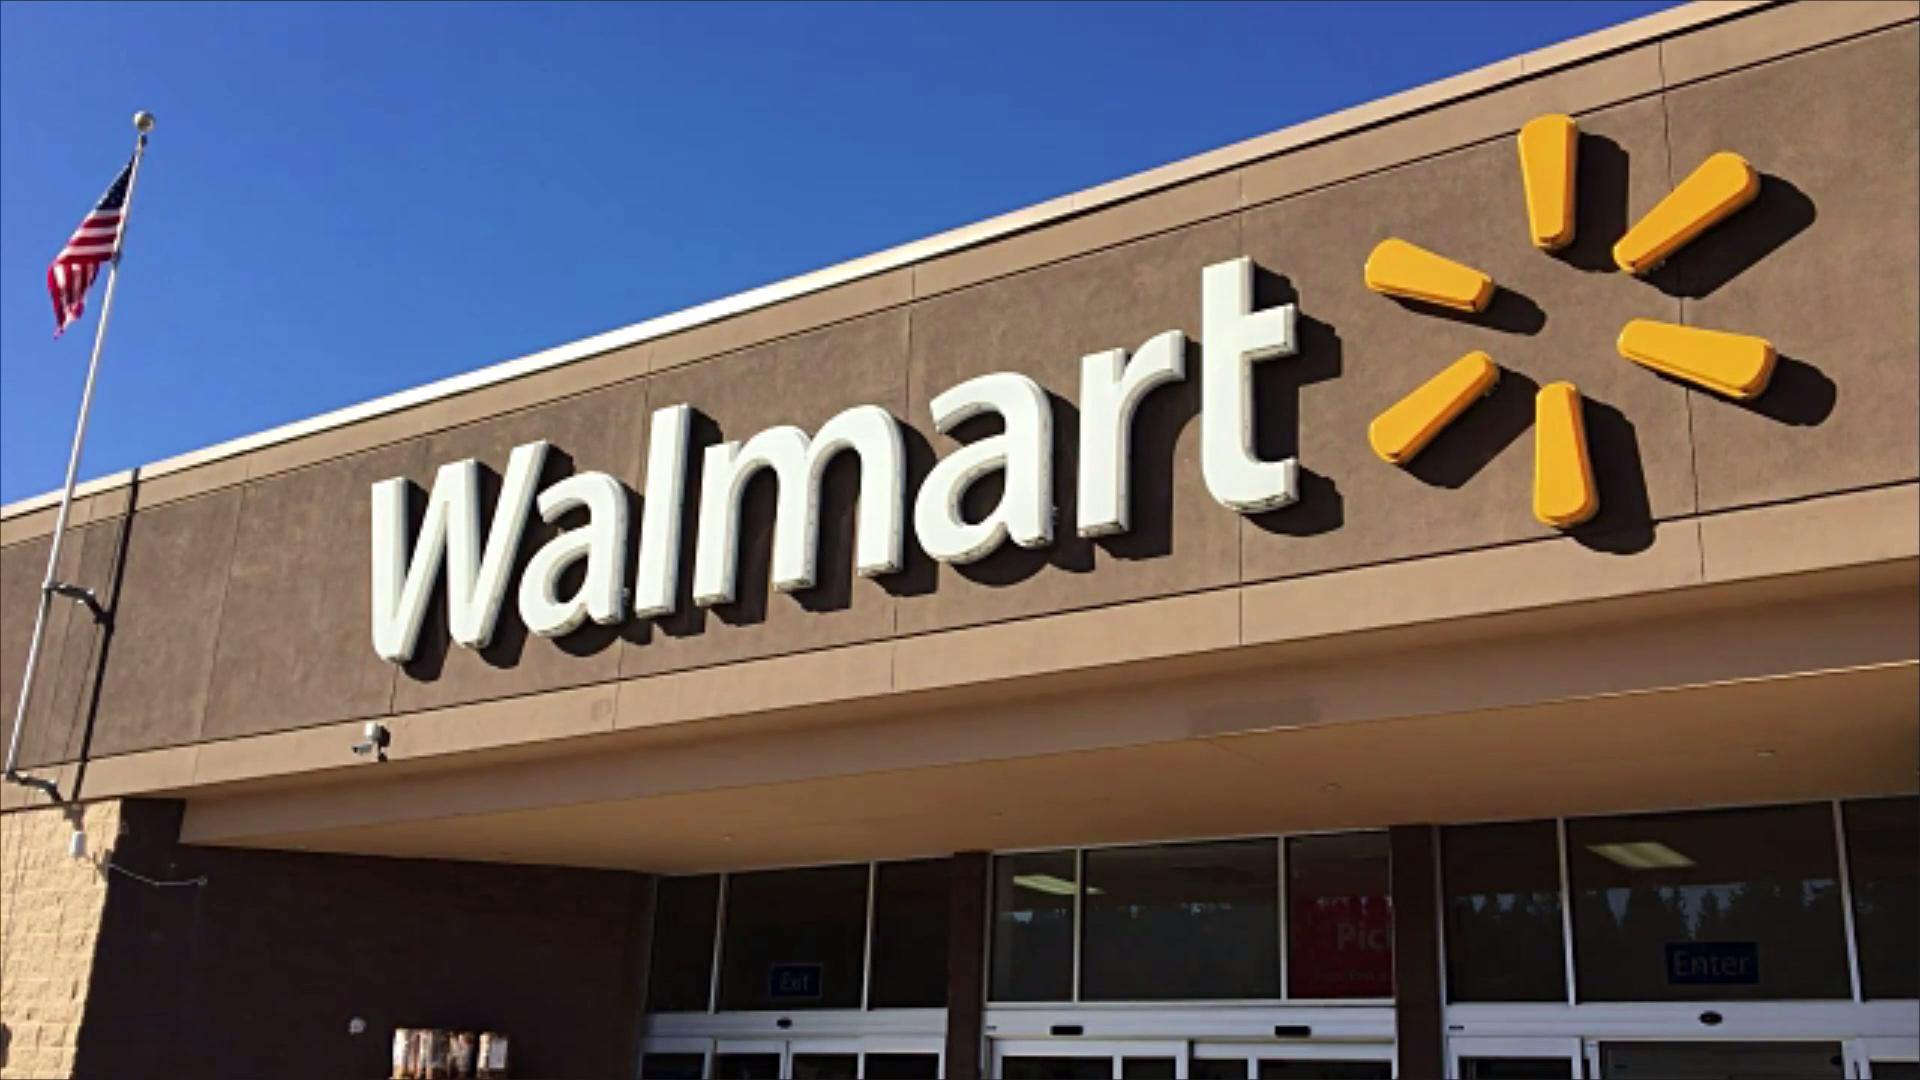 Check Out Our Favorite Walmart Sale Items